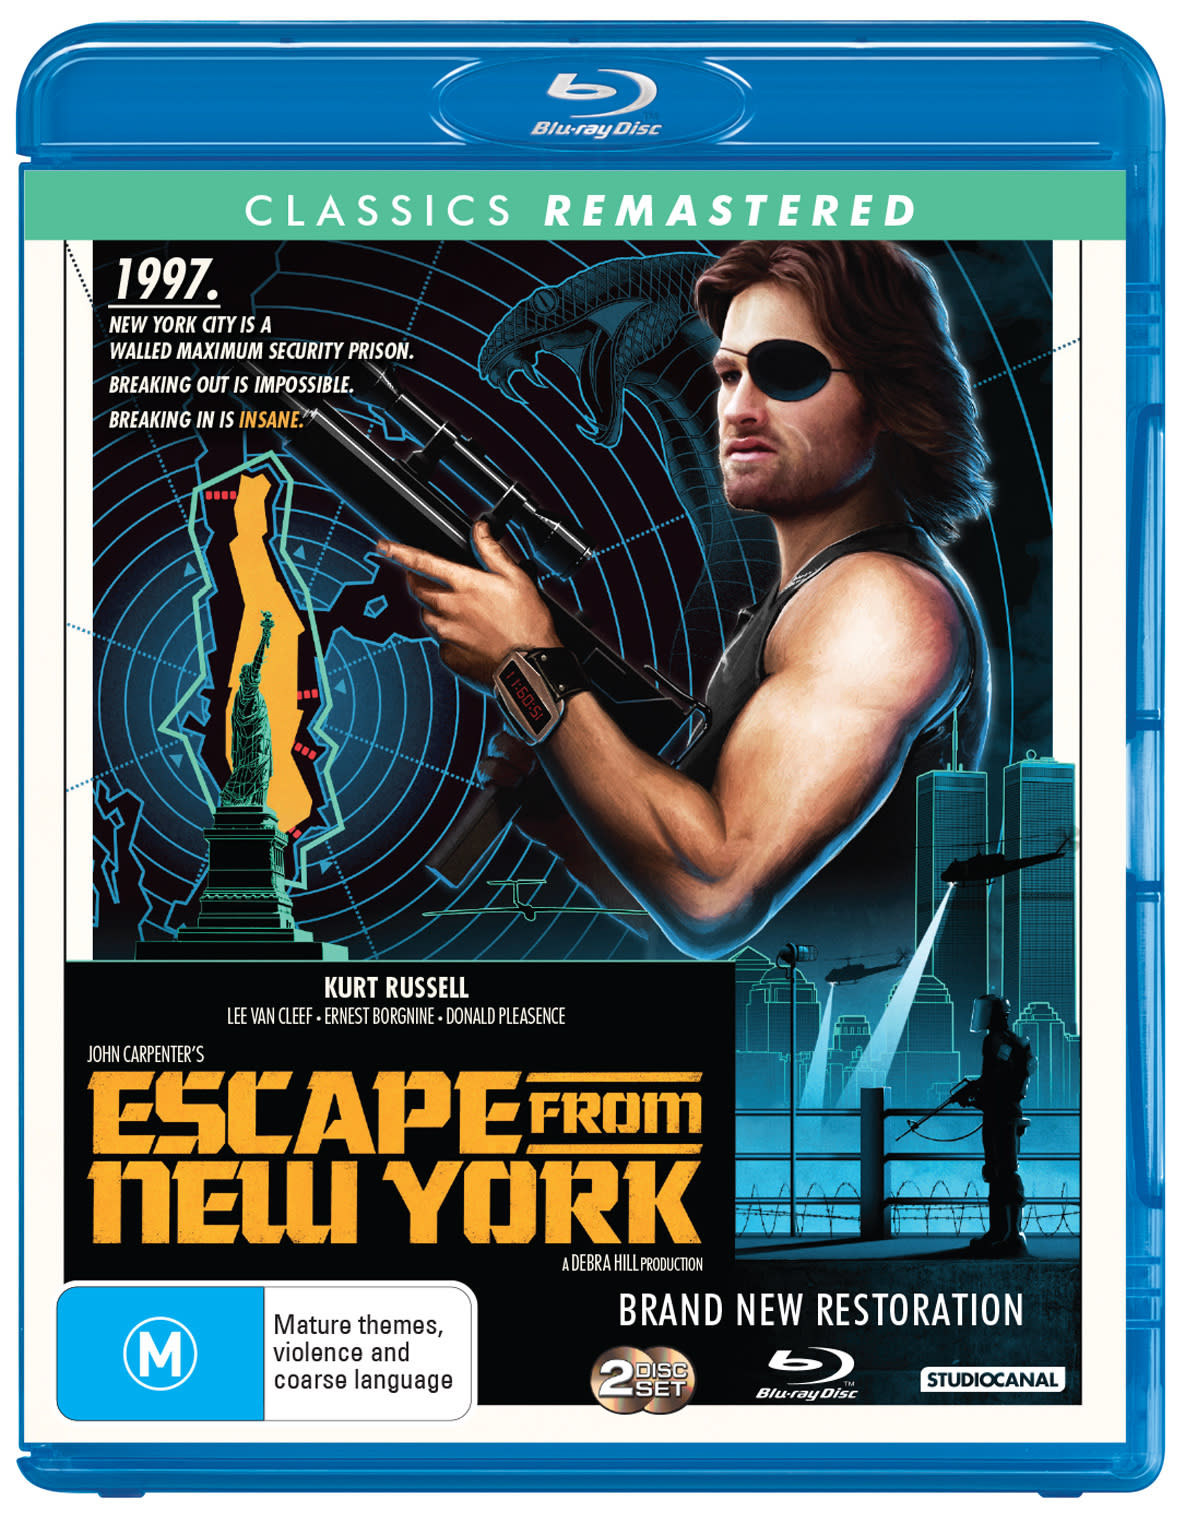 John Carpenter's escape from New York                             [Blu-ray]